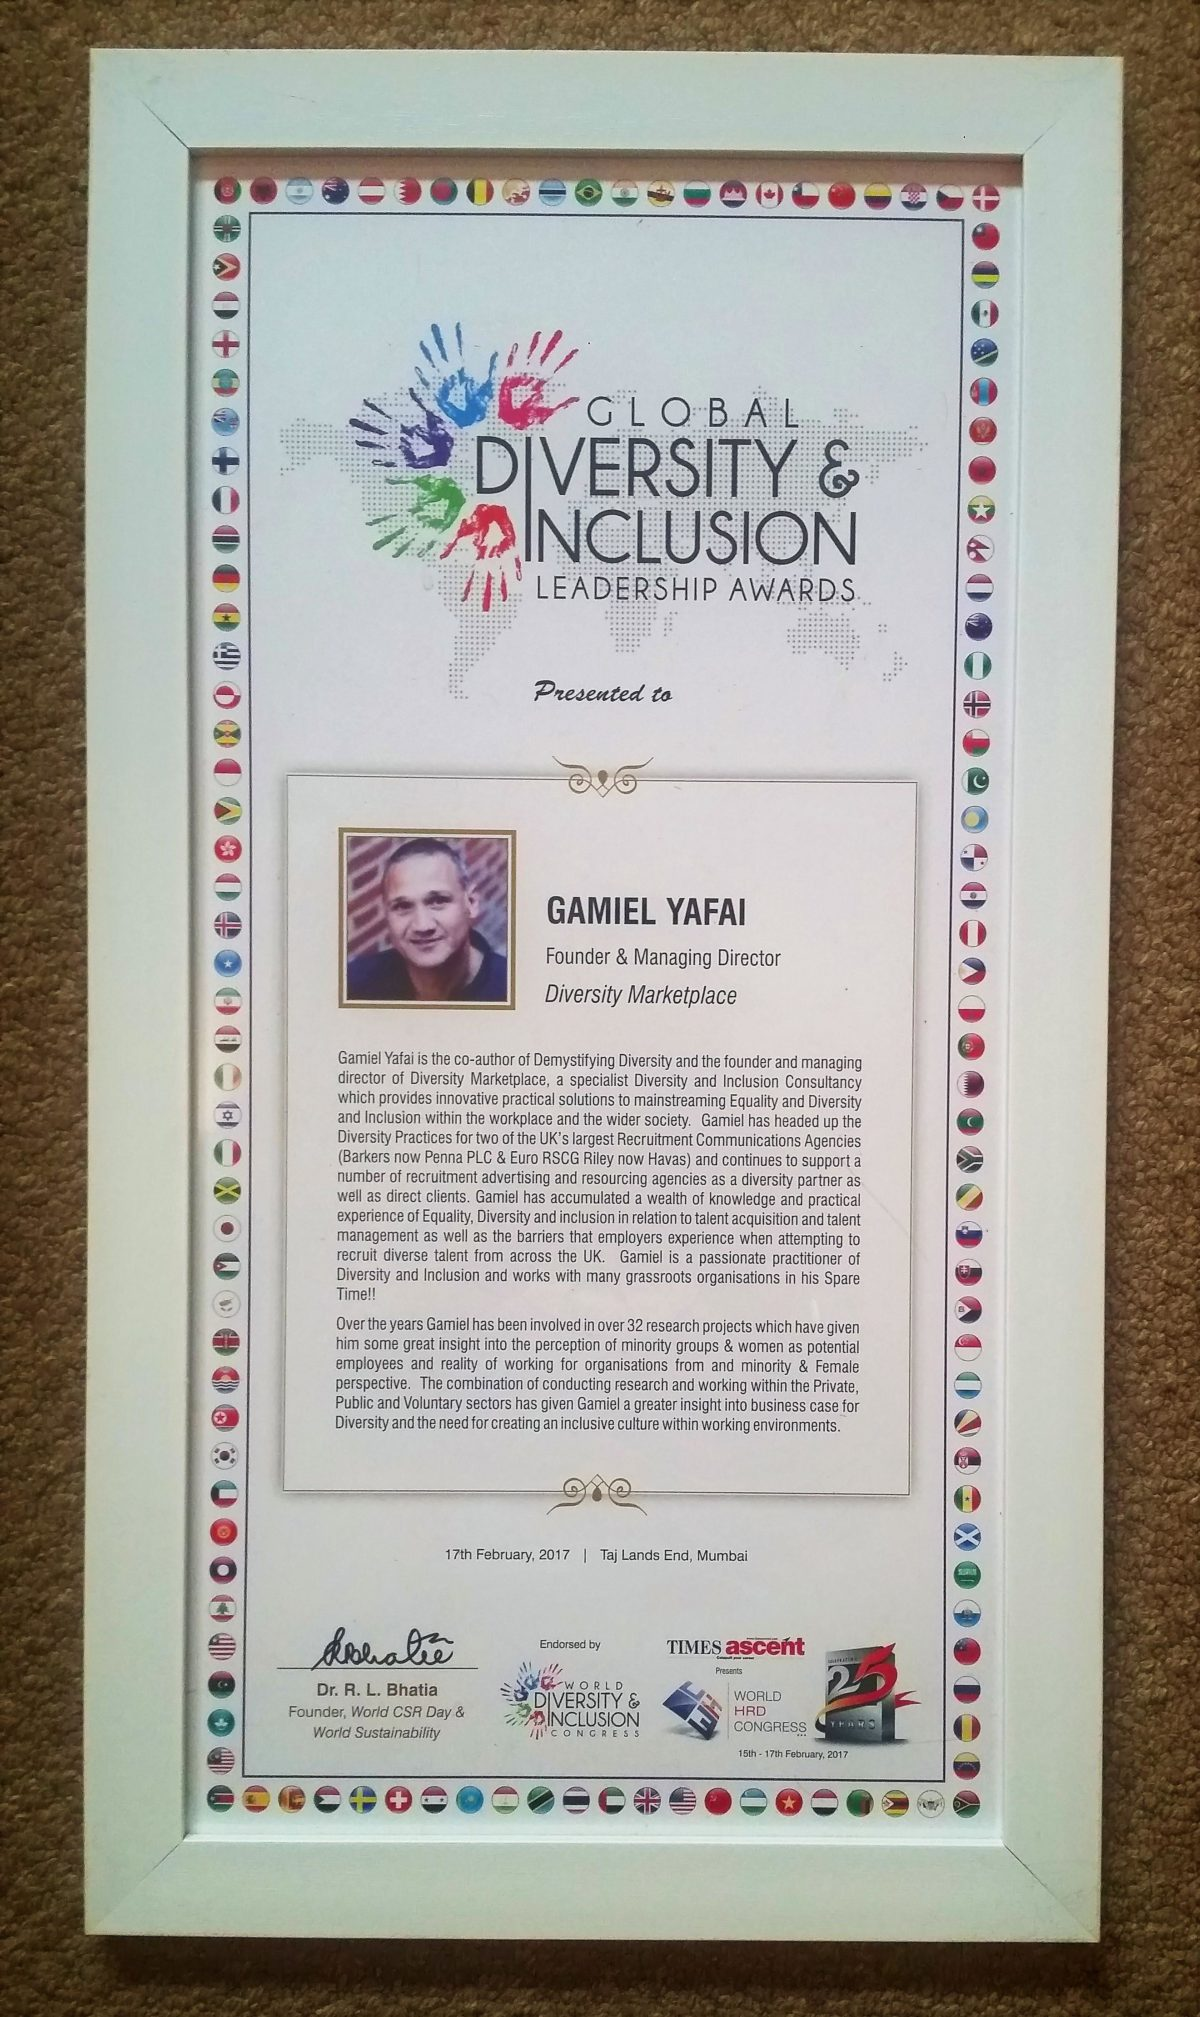 Gamiel receives award from the Global HRD Congress